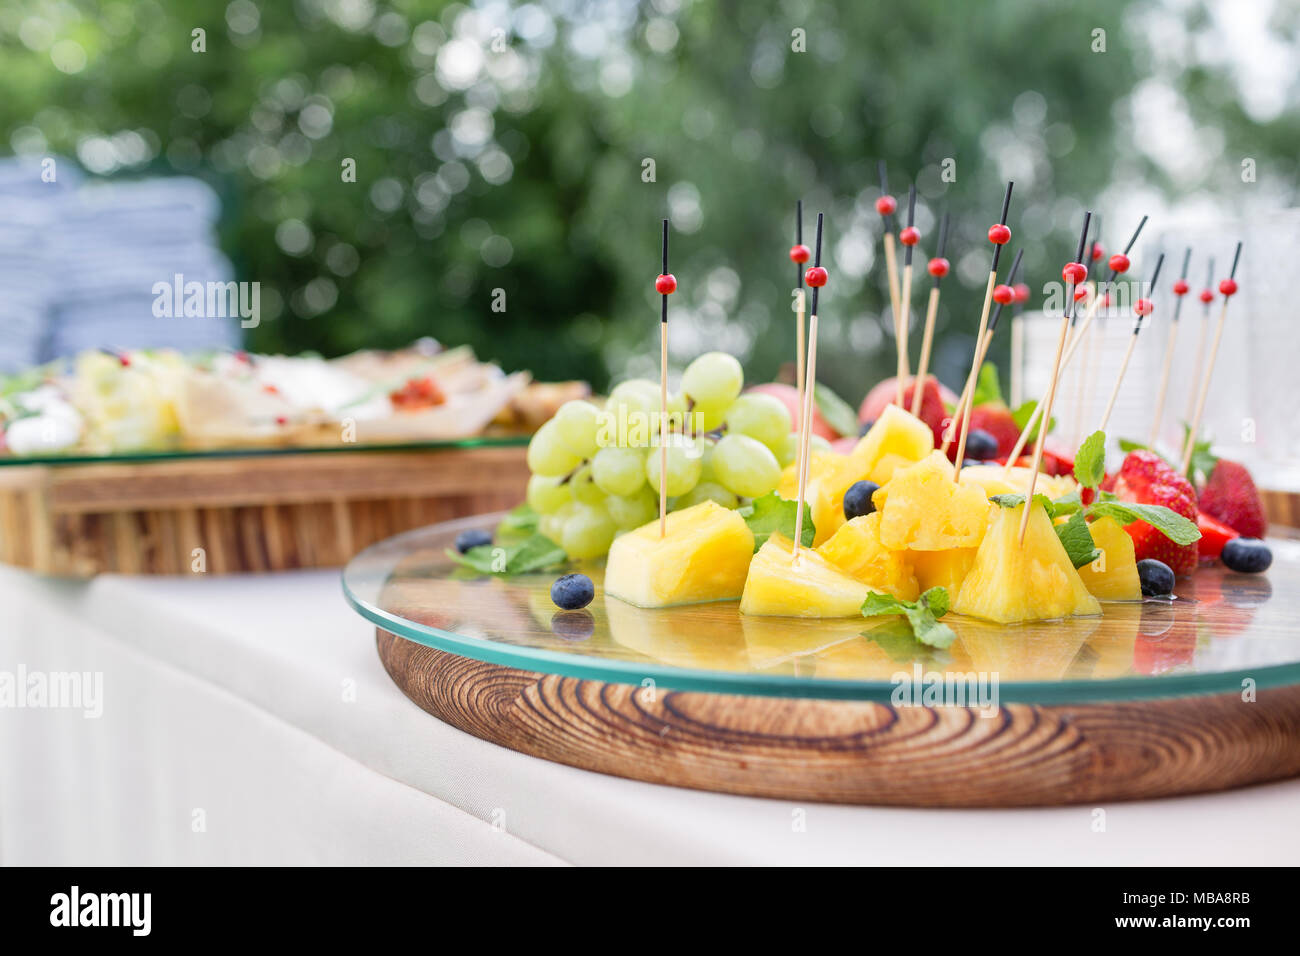 Wooden plate with sliced fruits and berries on a buffet table. Summer party outdoor. Horizontal photo - Stock Image